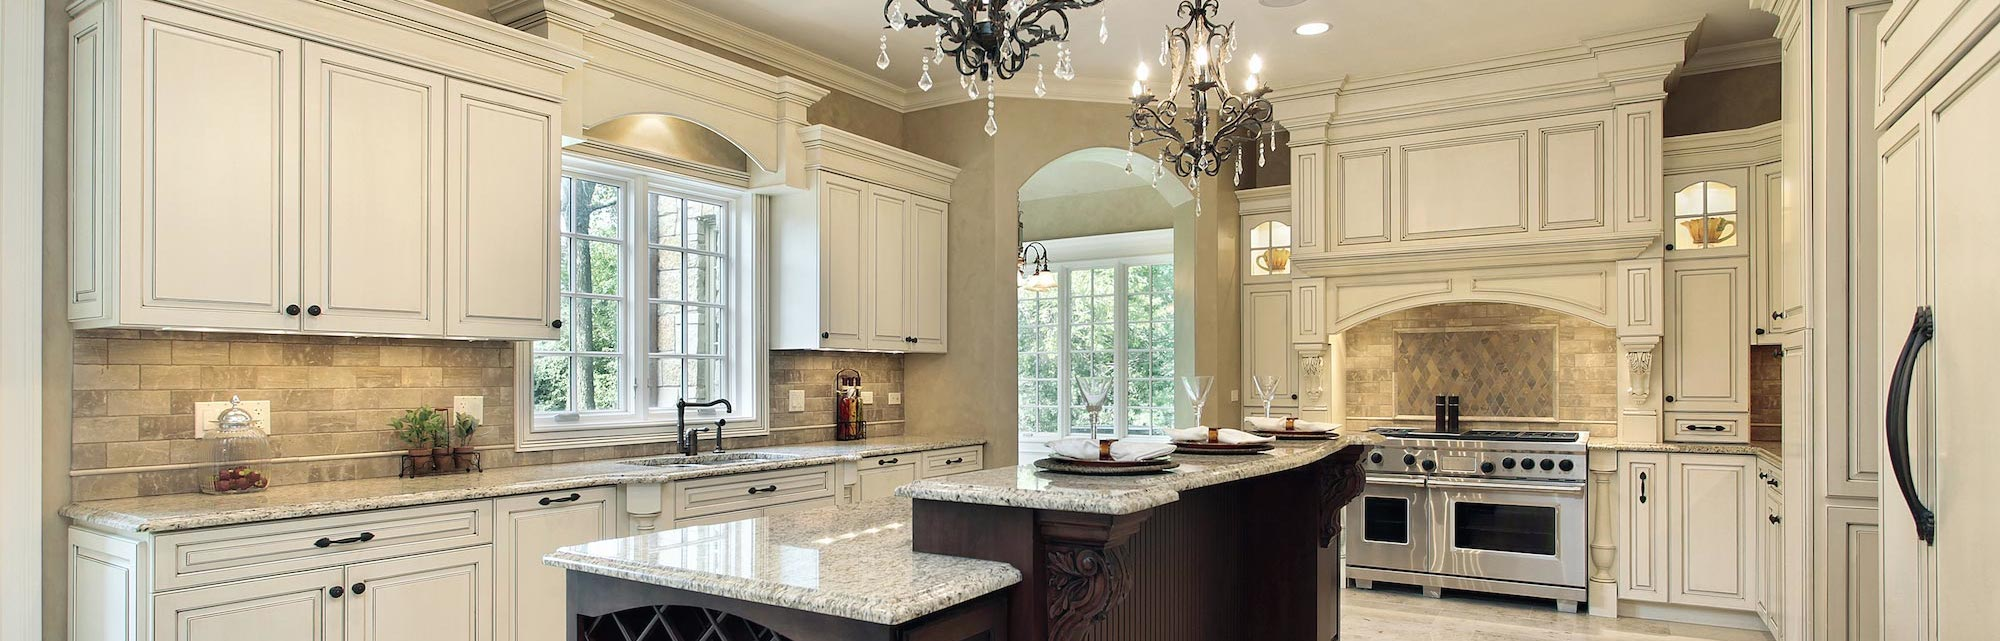 Delicieux Brightwaters Cabinets, Long Island NY | Kitchen Cabinets Long Island